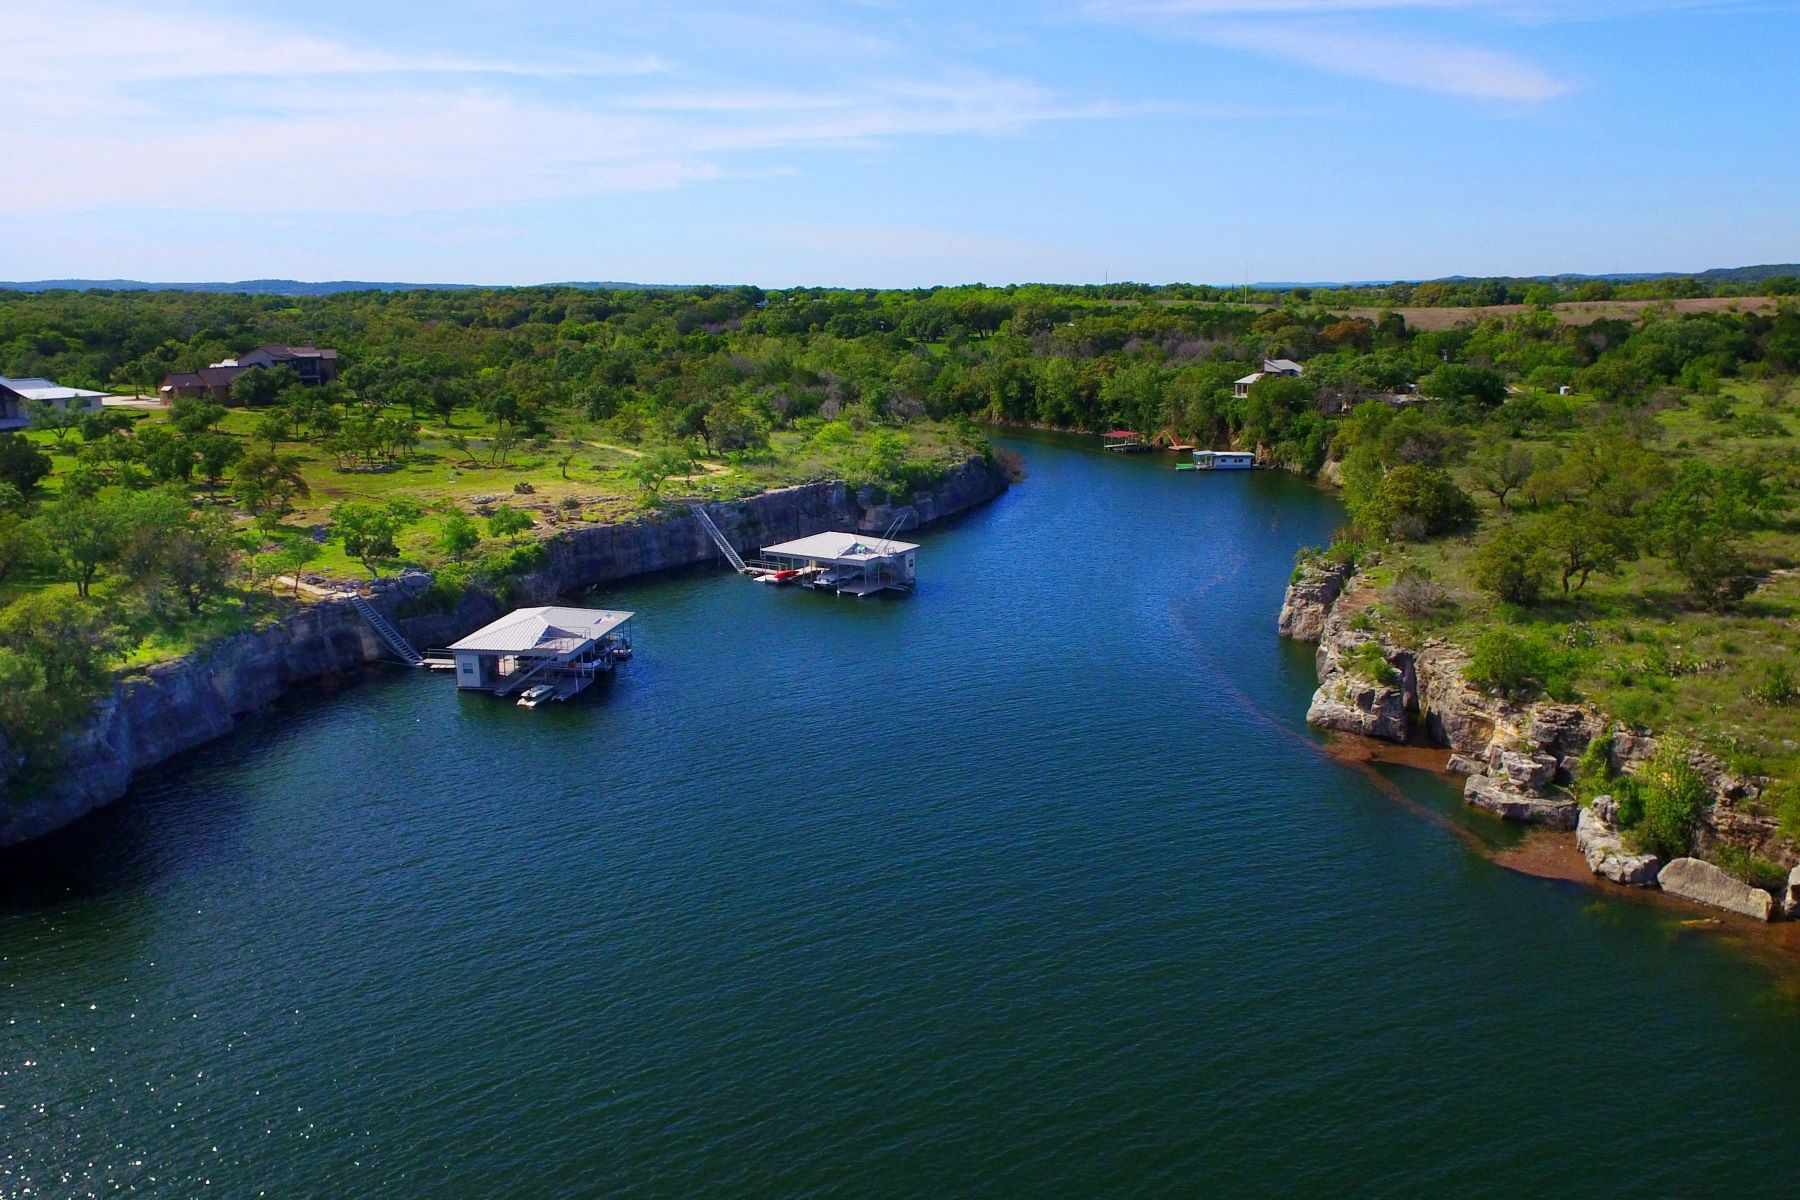 Land for Sale at Beautiful Lot in a Tranquil Community 22709 Mary Nell Ln Spicewood, Texas 78669 United States